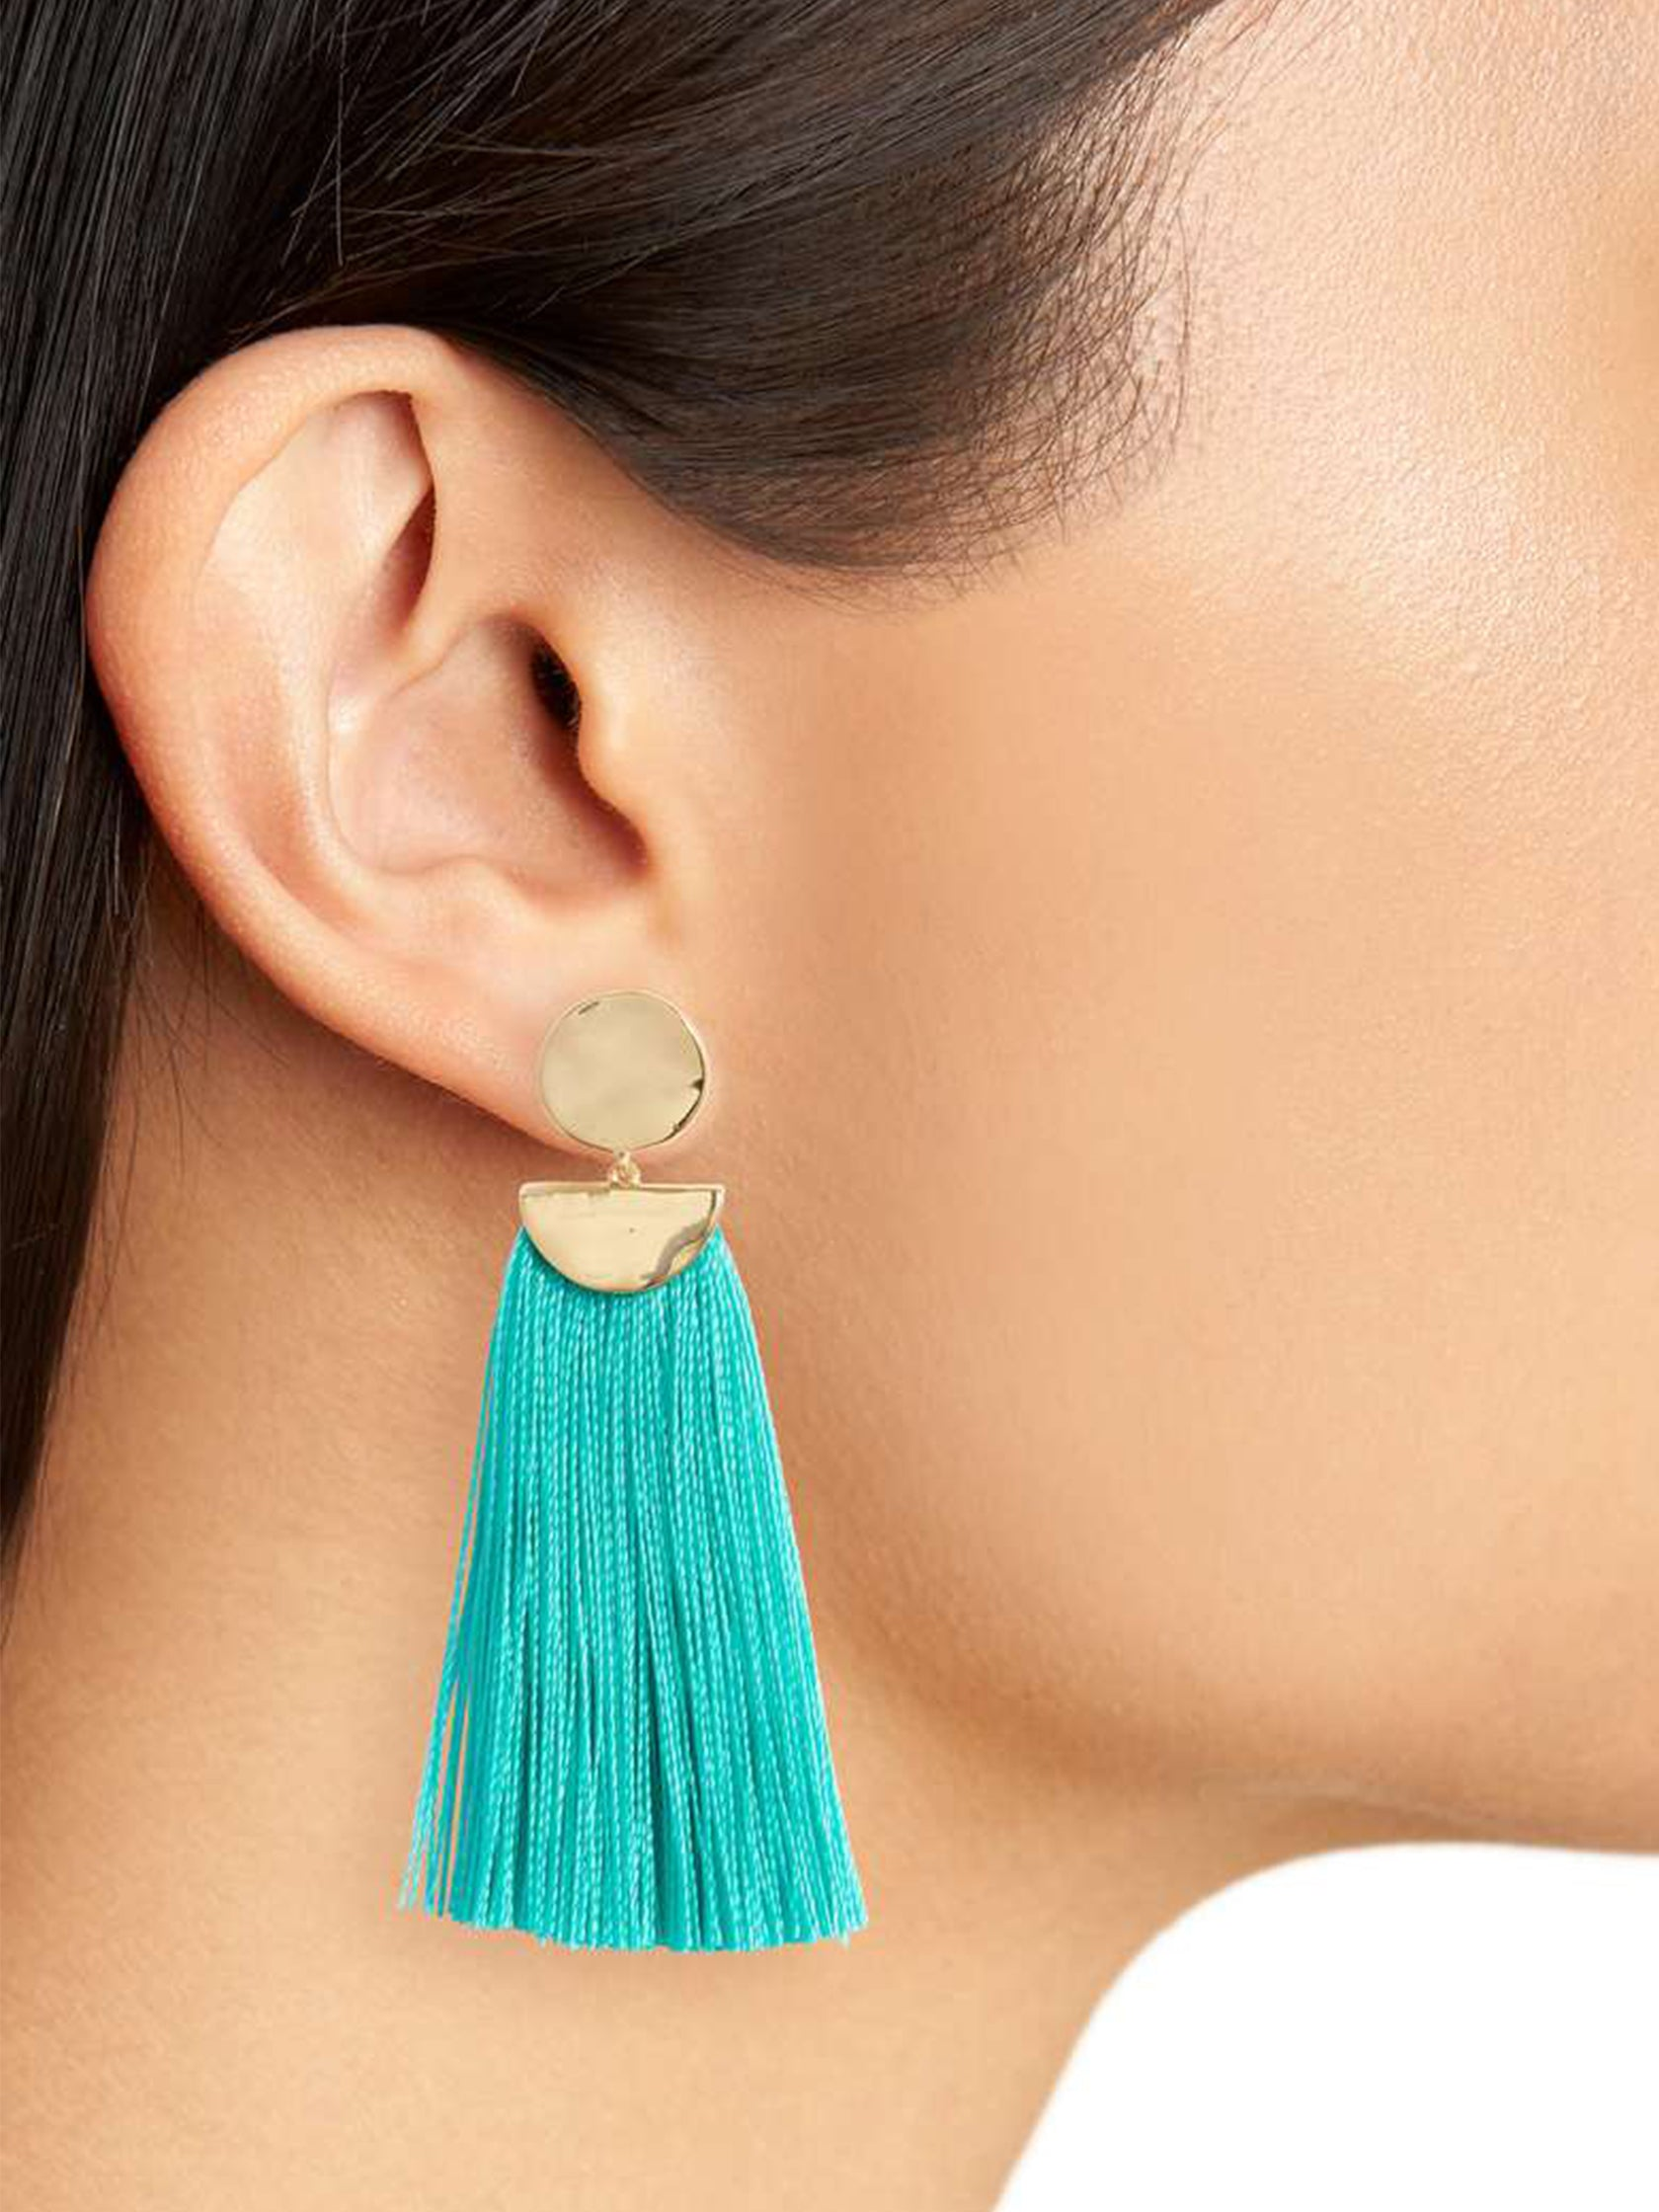 Girl outfit in a earrings rental from Gorjana called Havana Circle Tassel Earrings